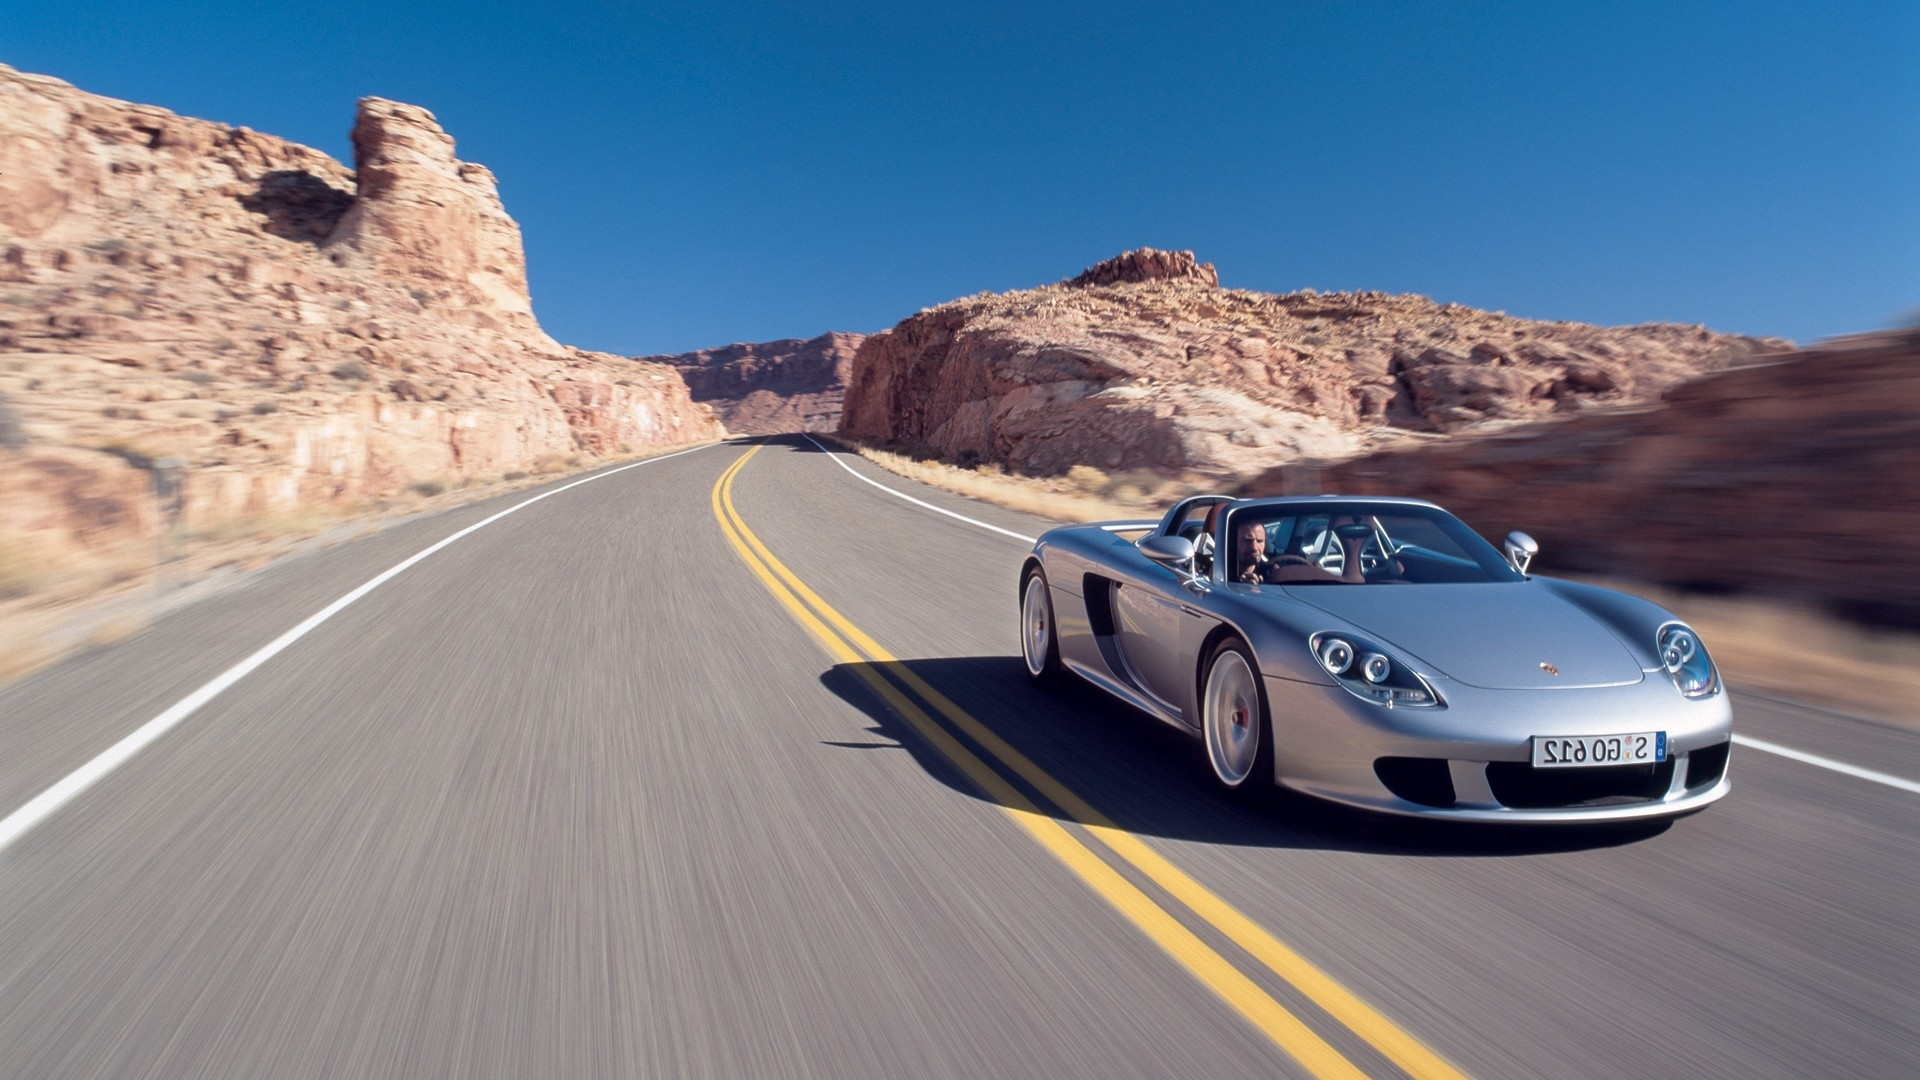 Cars wallpaper ·① Download free awesome full HD ...